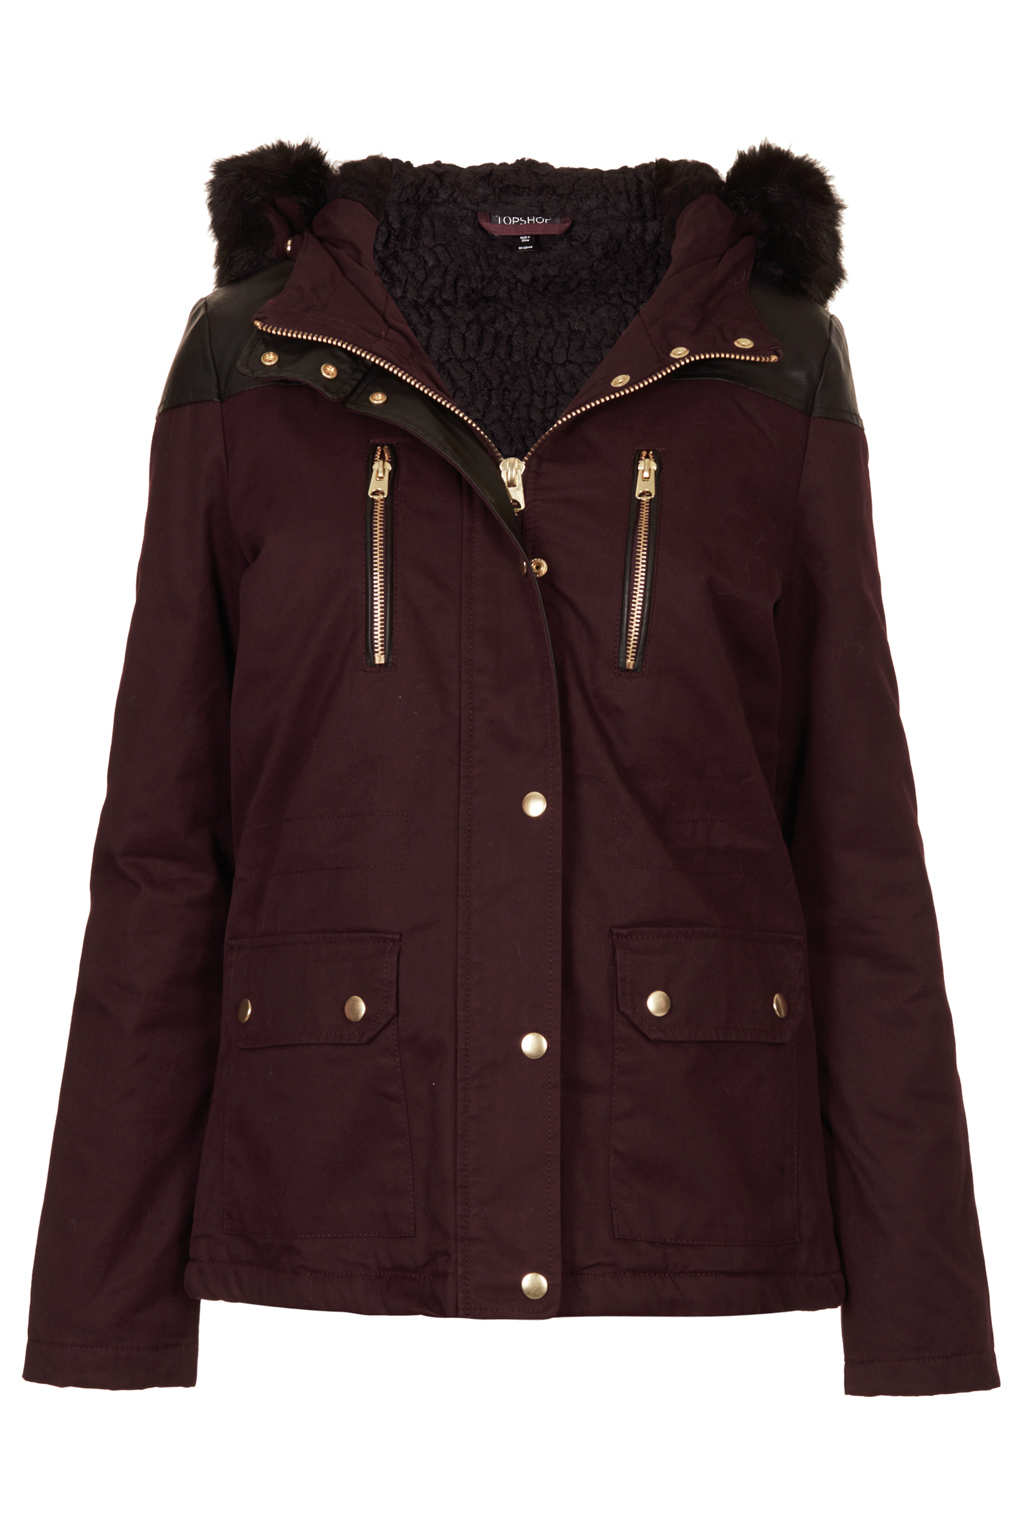 Topshop Fur Trim Short Parka Jacket in Purple | Lyst